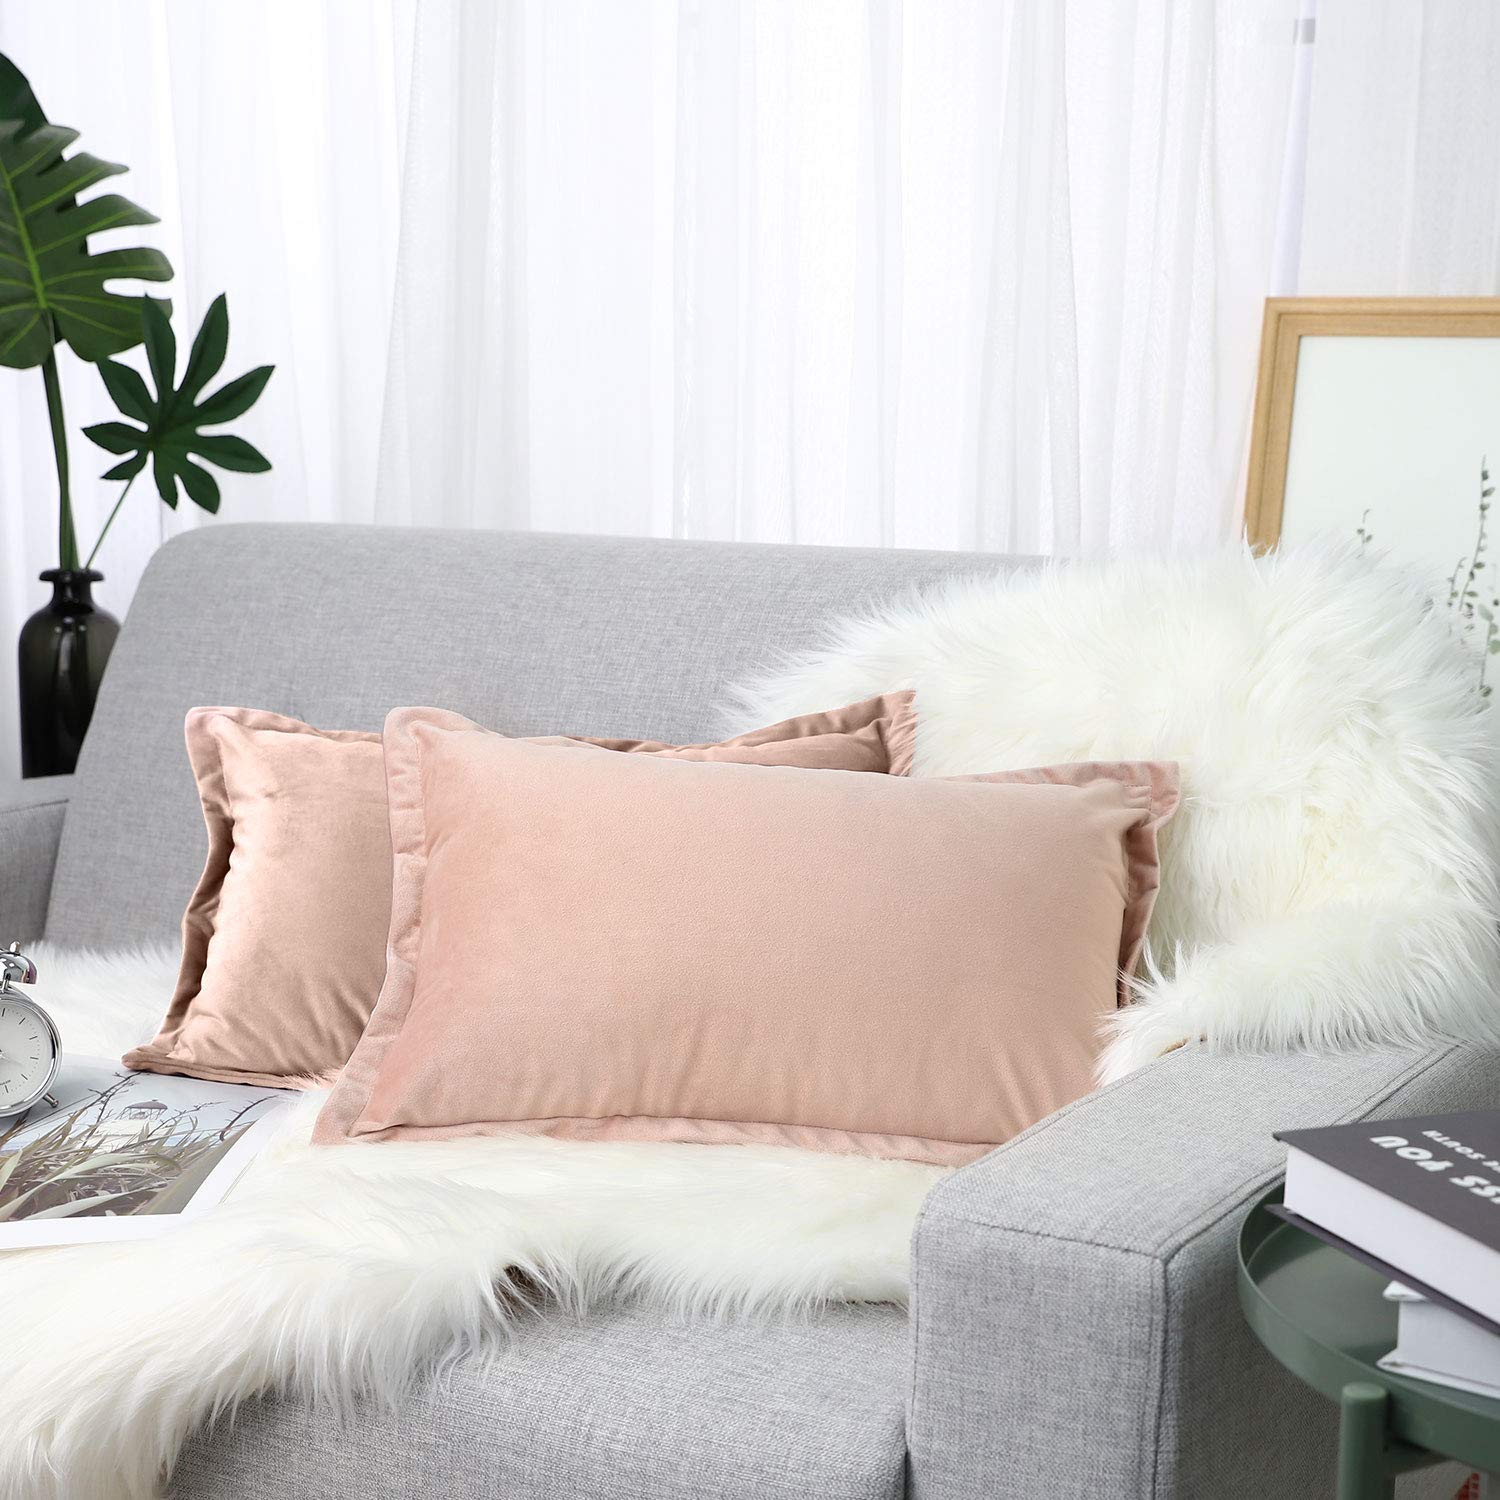 """Lewondr Velvet Throw Pillow Cover, 2 Pack Soft Solid Color Modern Square Pillow Case Throw Cushion Covers with Hem Stitch for Car Sofa Bed Home Decor, 12""""x20""""(30x50cm), Pink"""